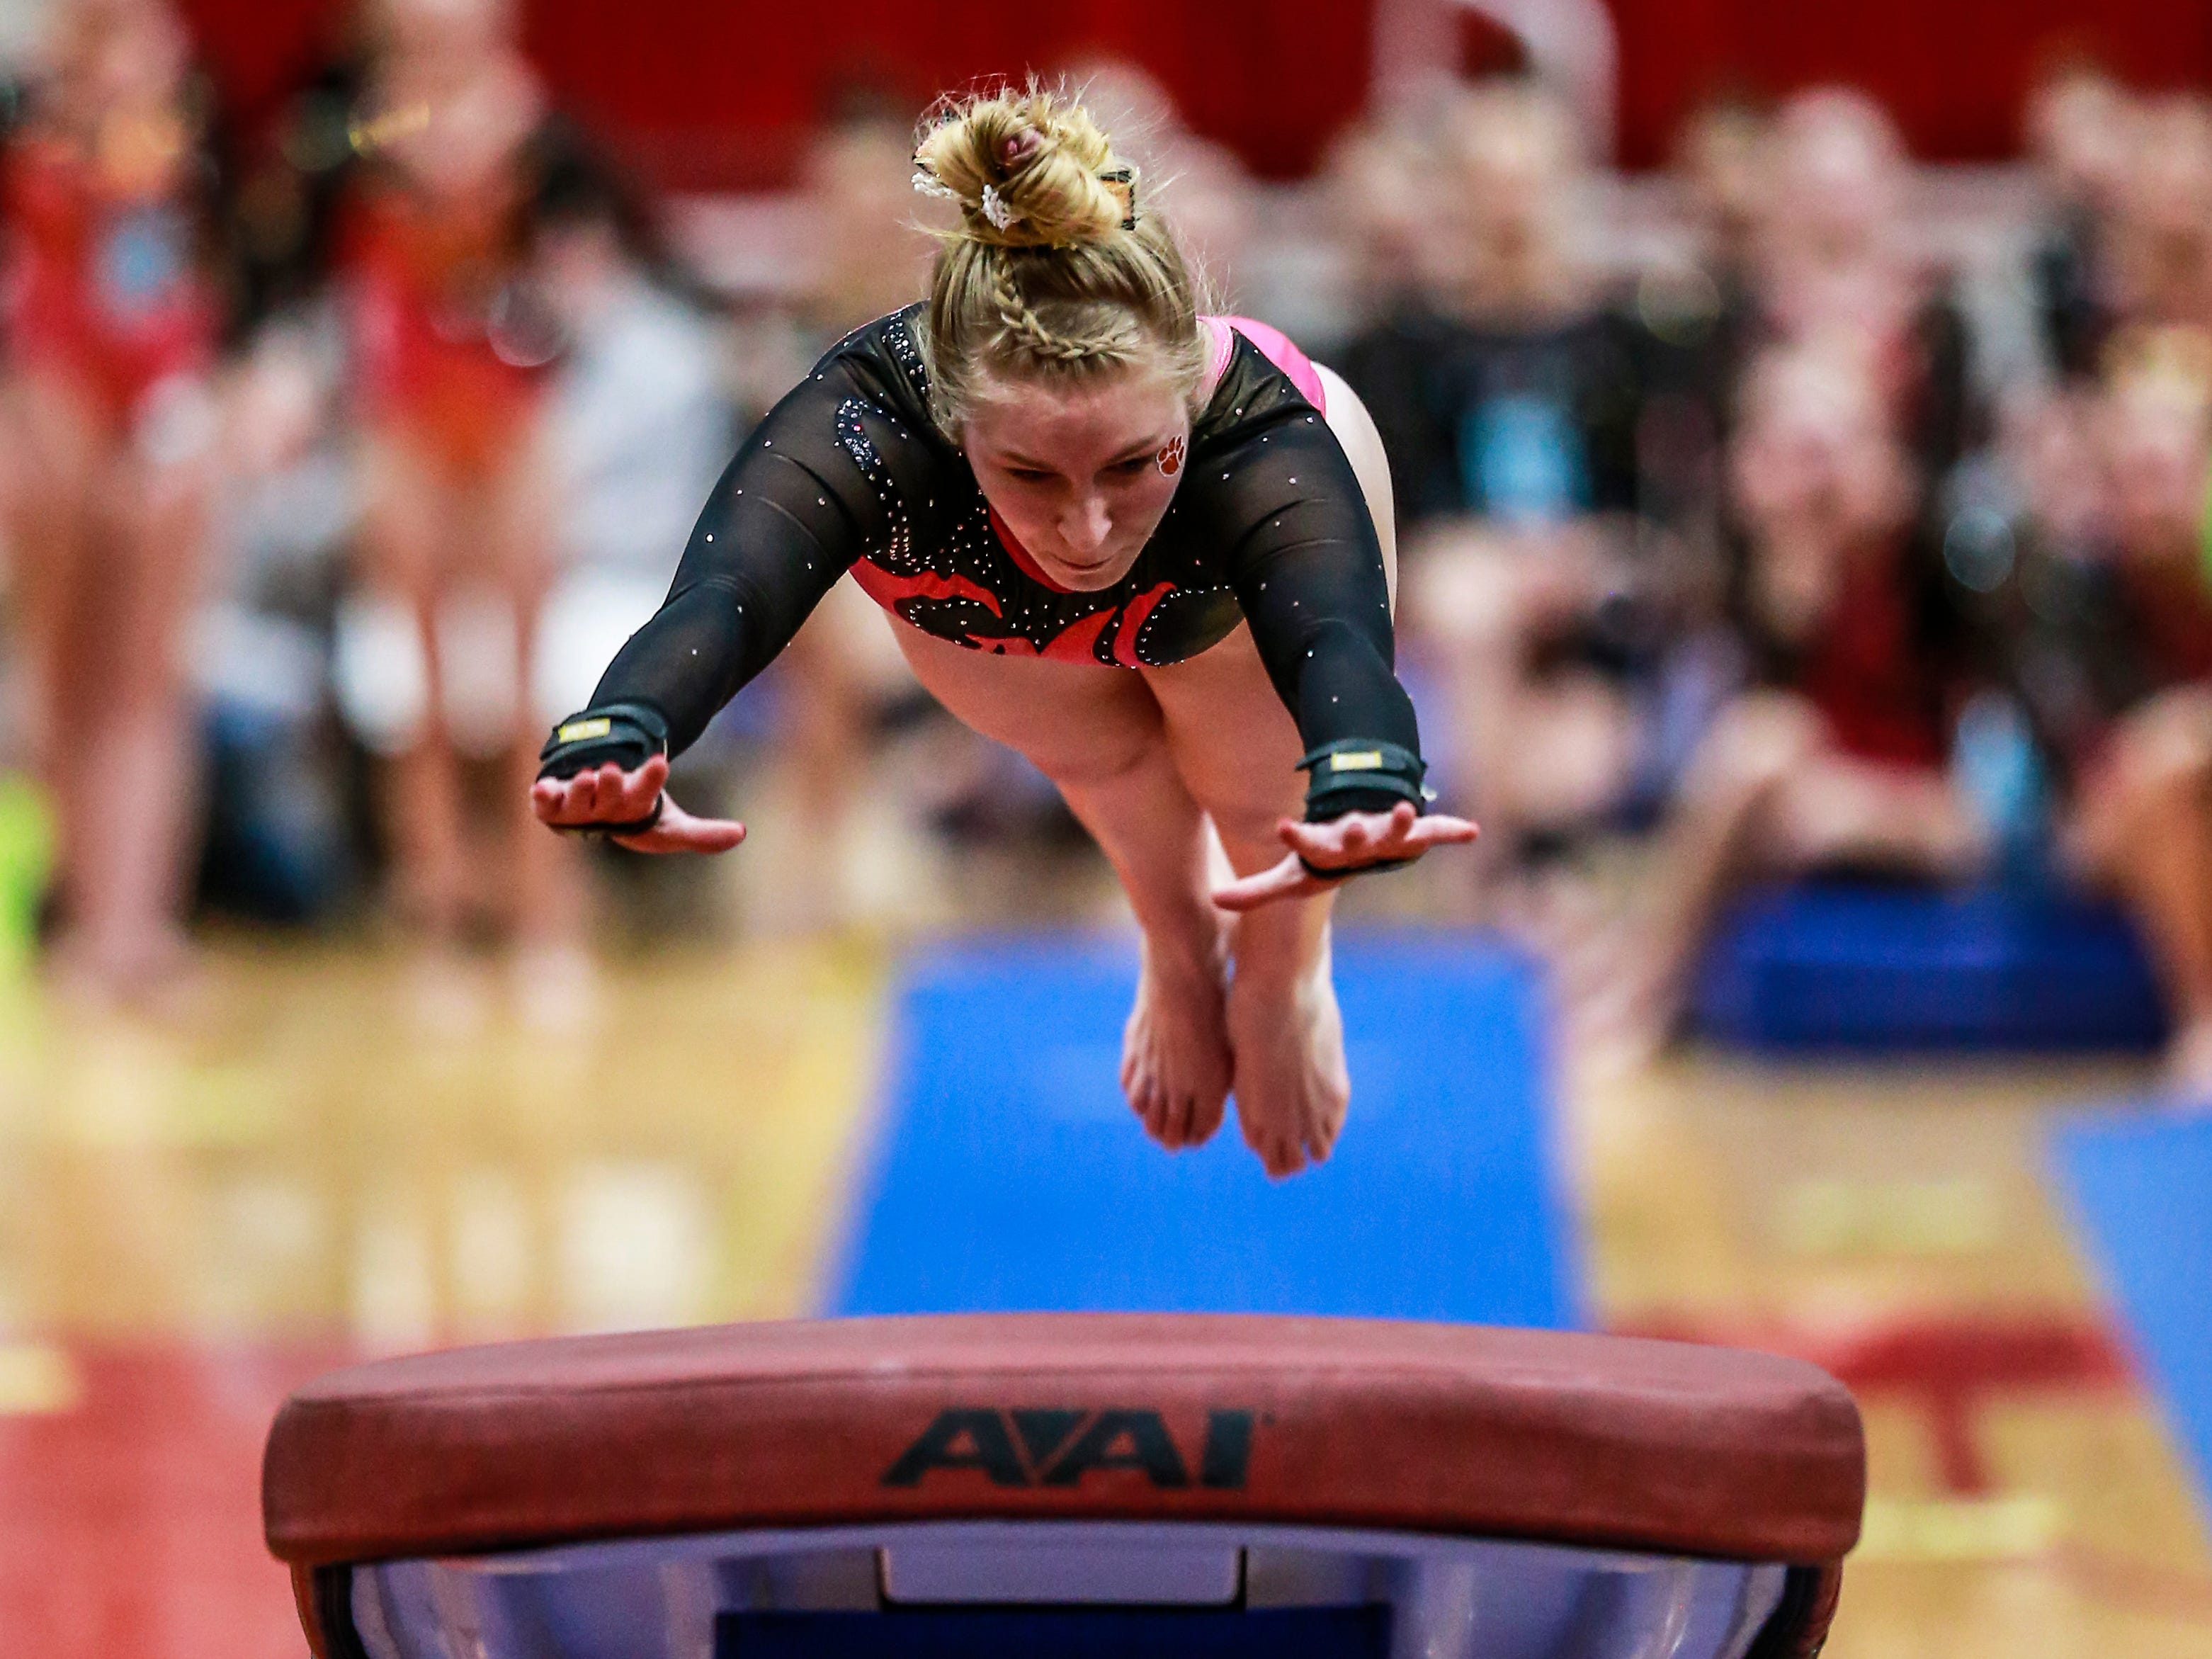 Marshfield's Emma Haugen competes in the vaulting during WIAA state gymnastics competition Friday, March 1, 2019, at Lincoln High School Field House in Wisconsin Rapids, Wis. T'xer Zhon Kha/USA TODAY NETWORK-Wisconsin